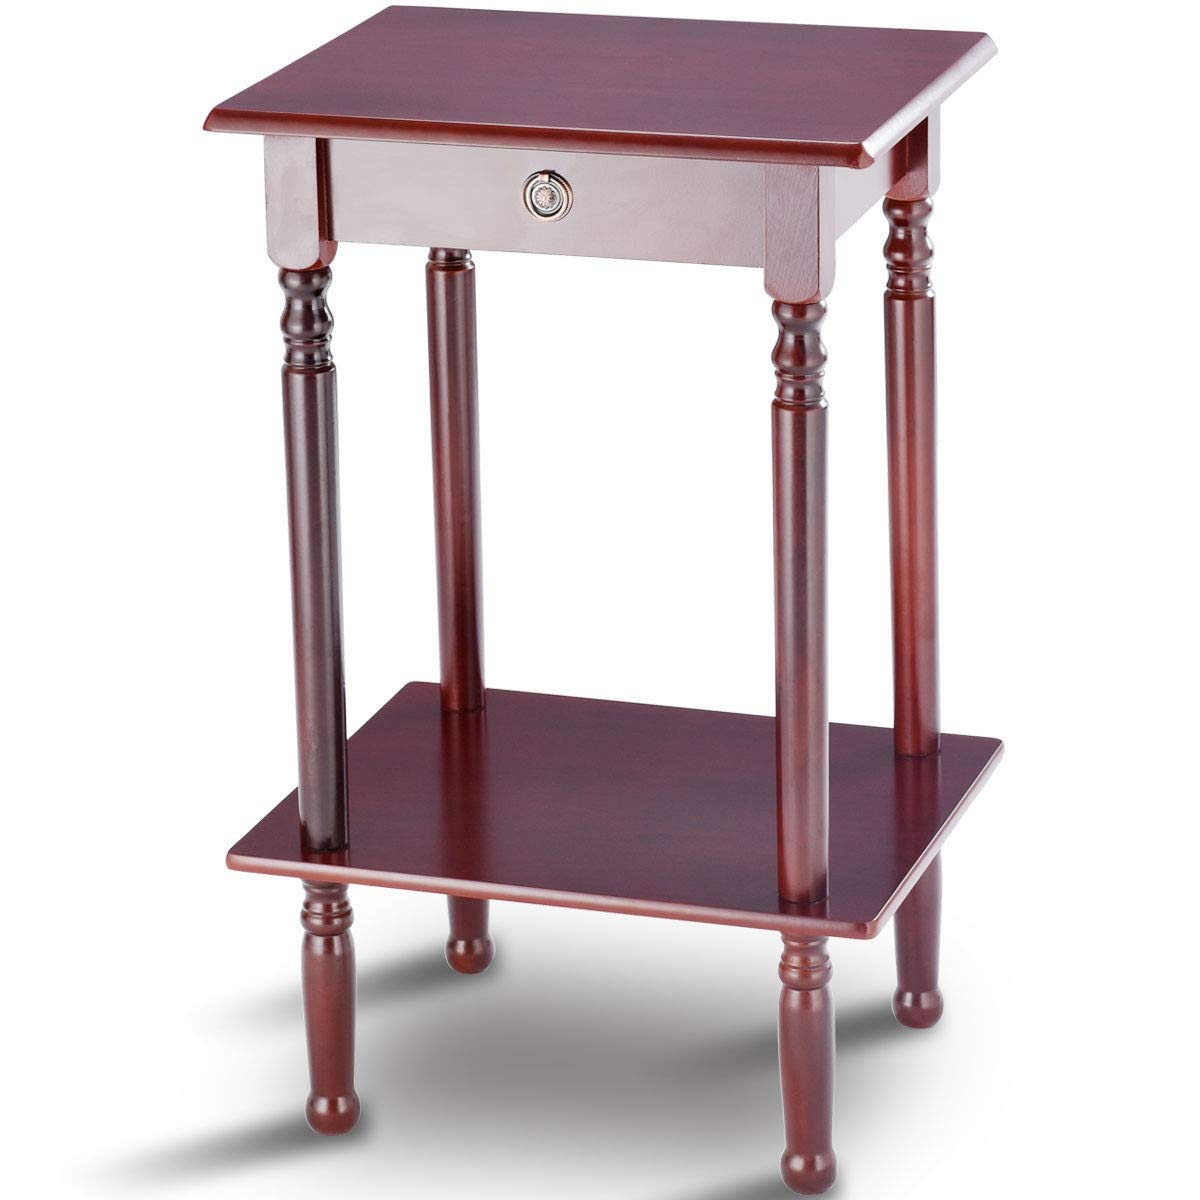 Tall Telephone Stand Side Shelf Table by AchieveUSA